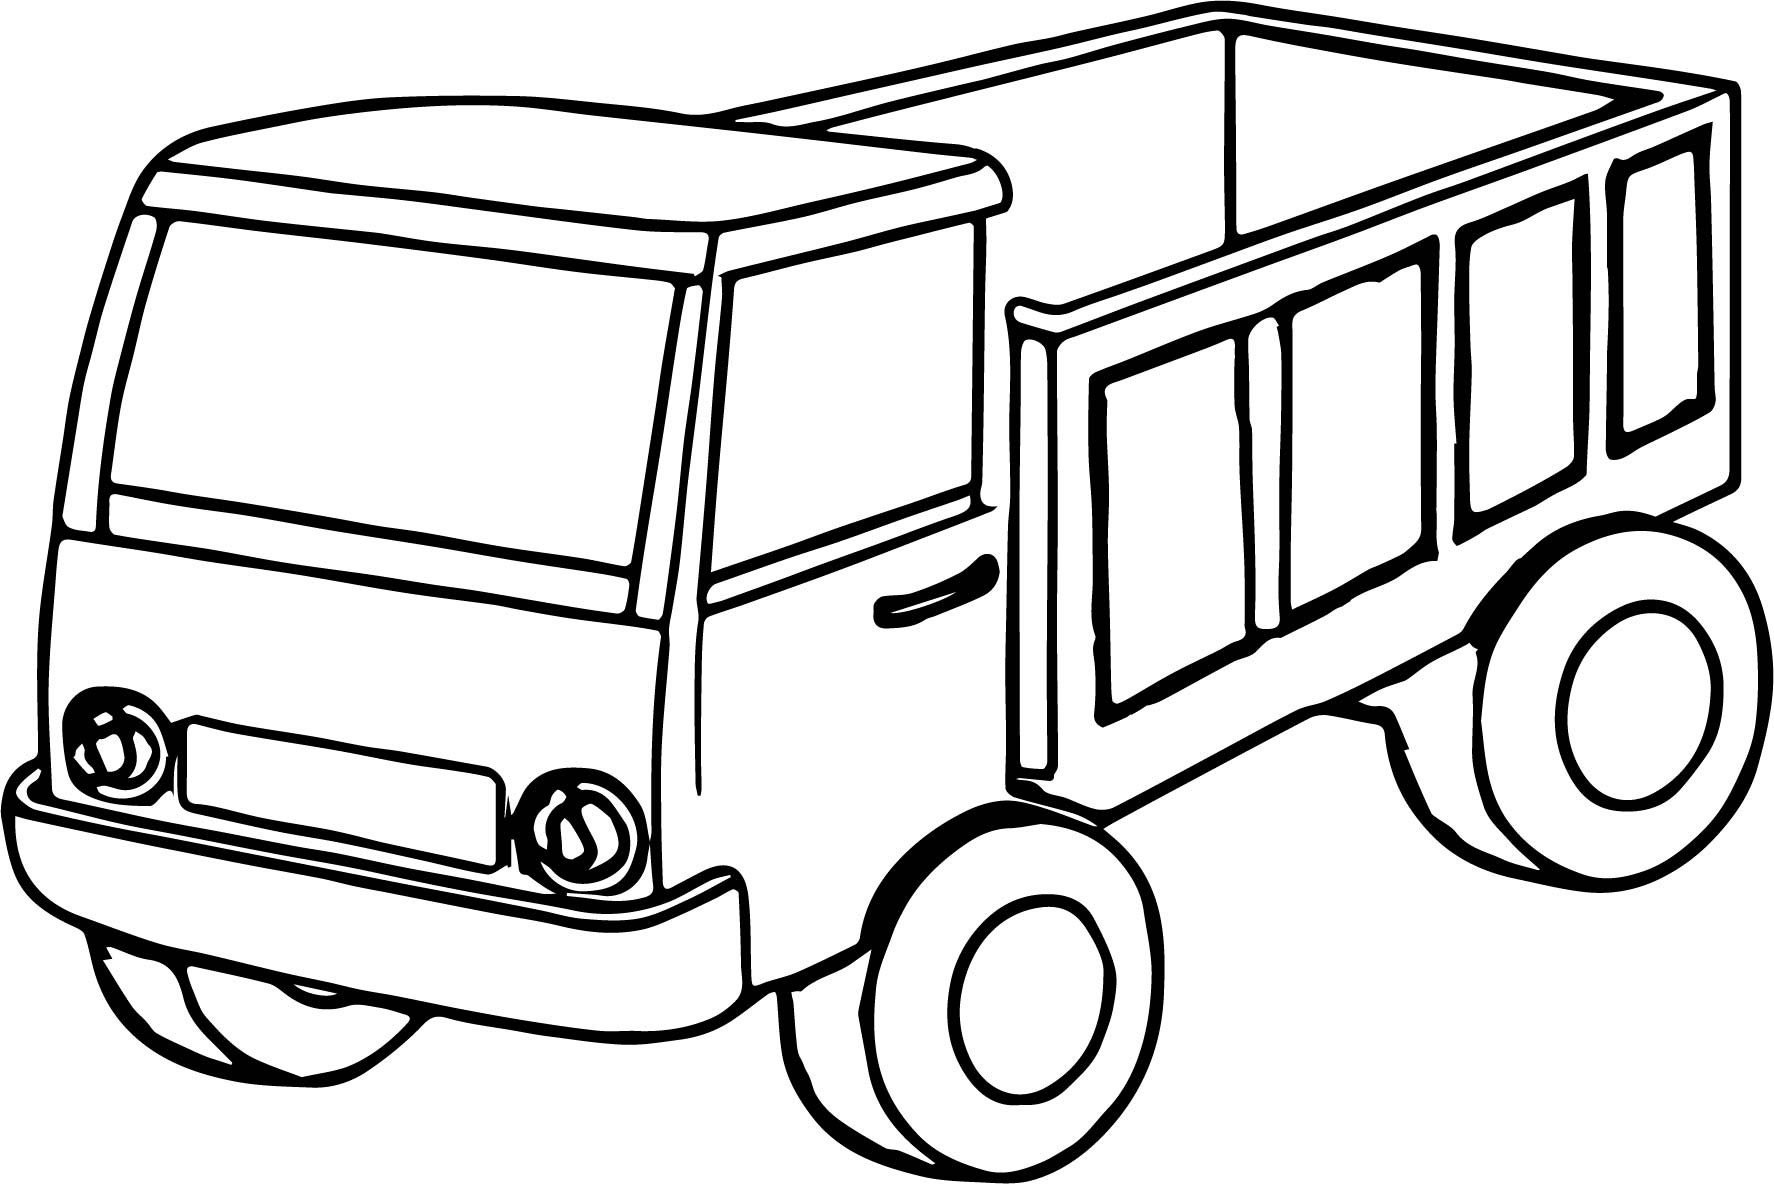 coloring truck pictures 40 free printable truck coloring pages download truck pictures coloring